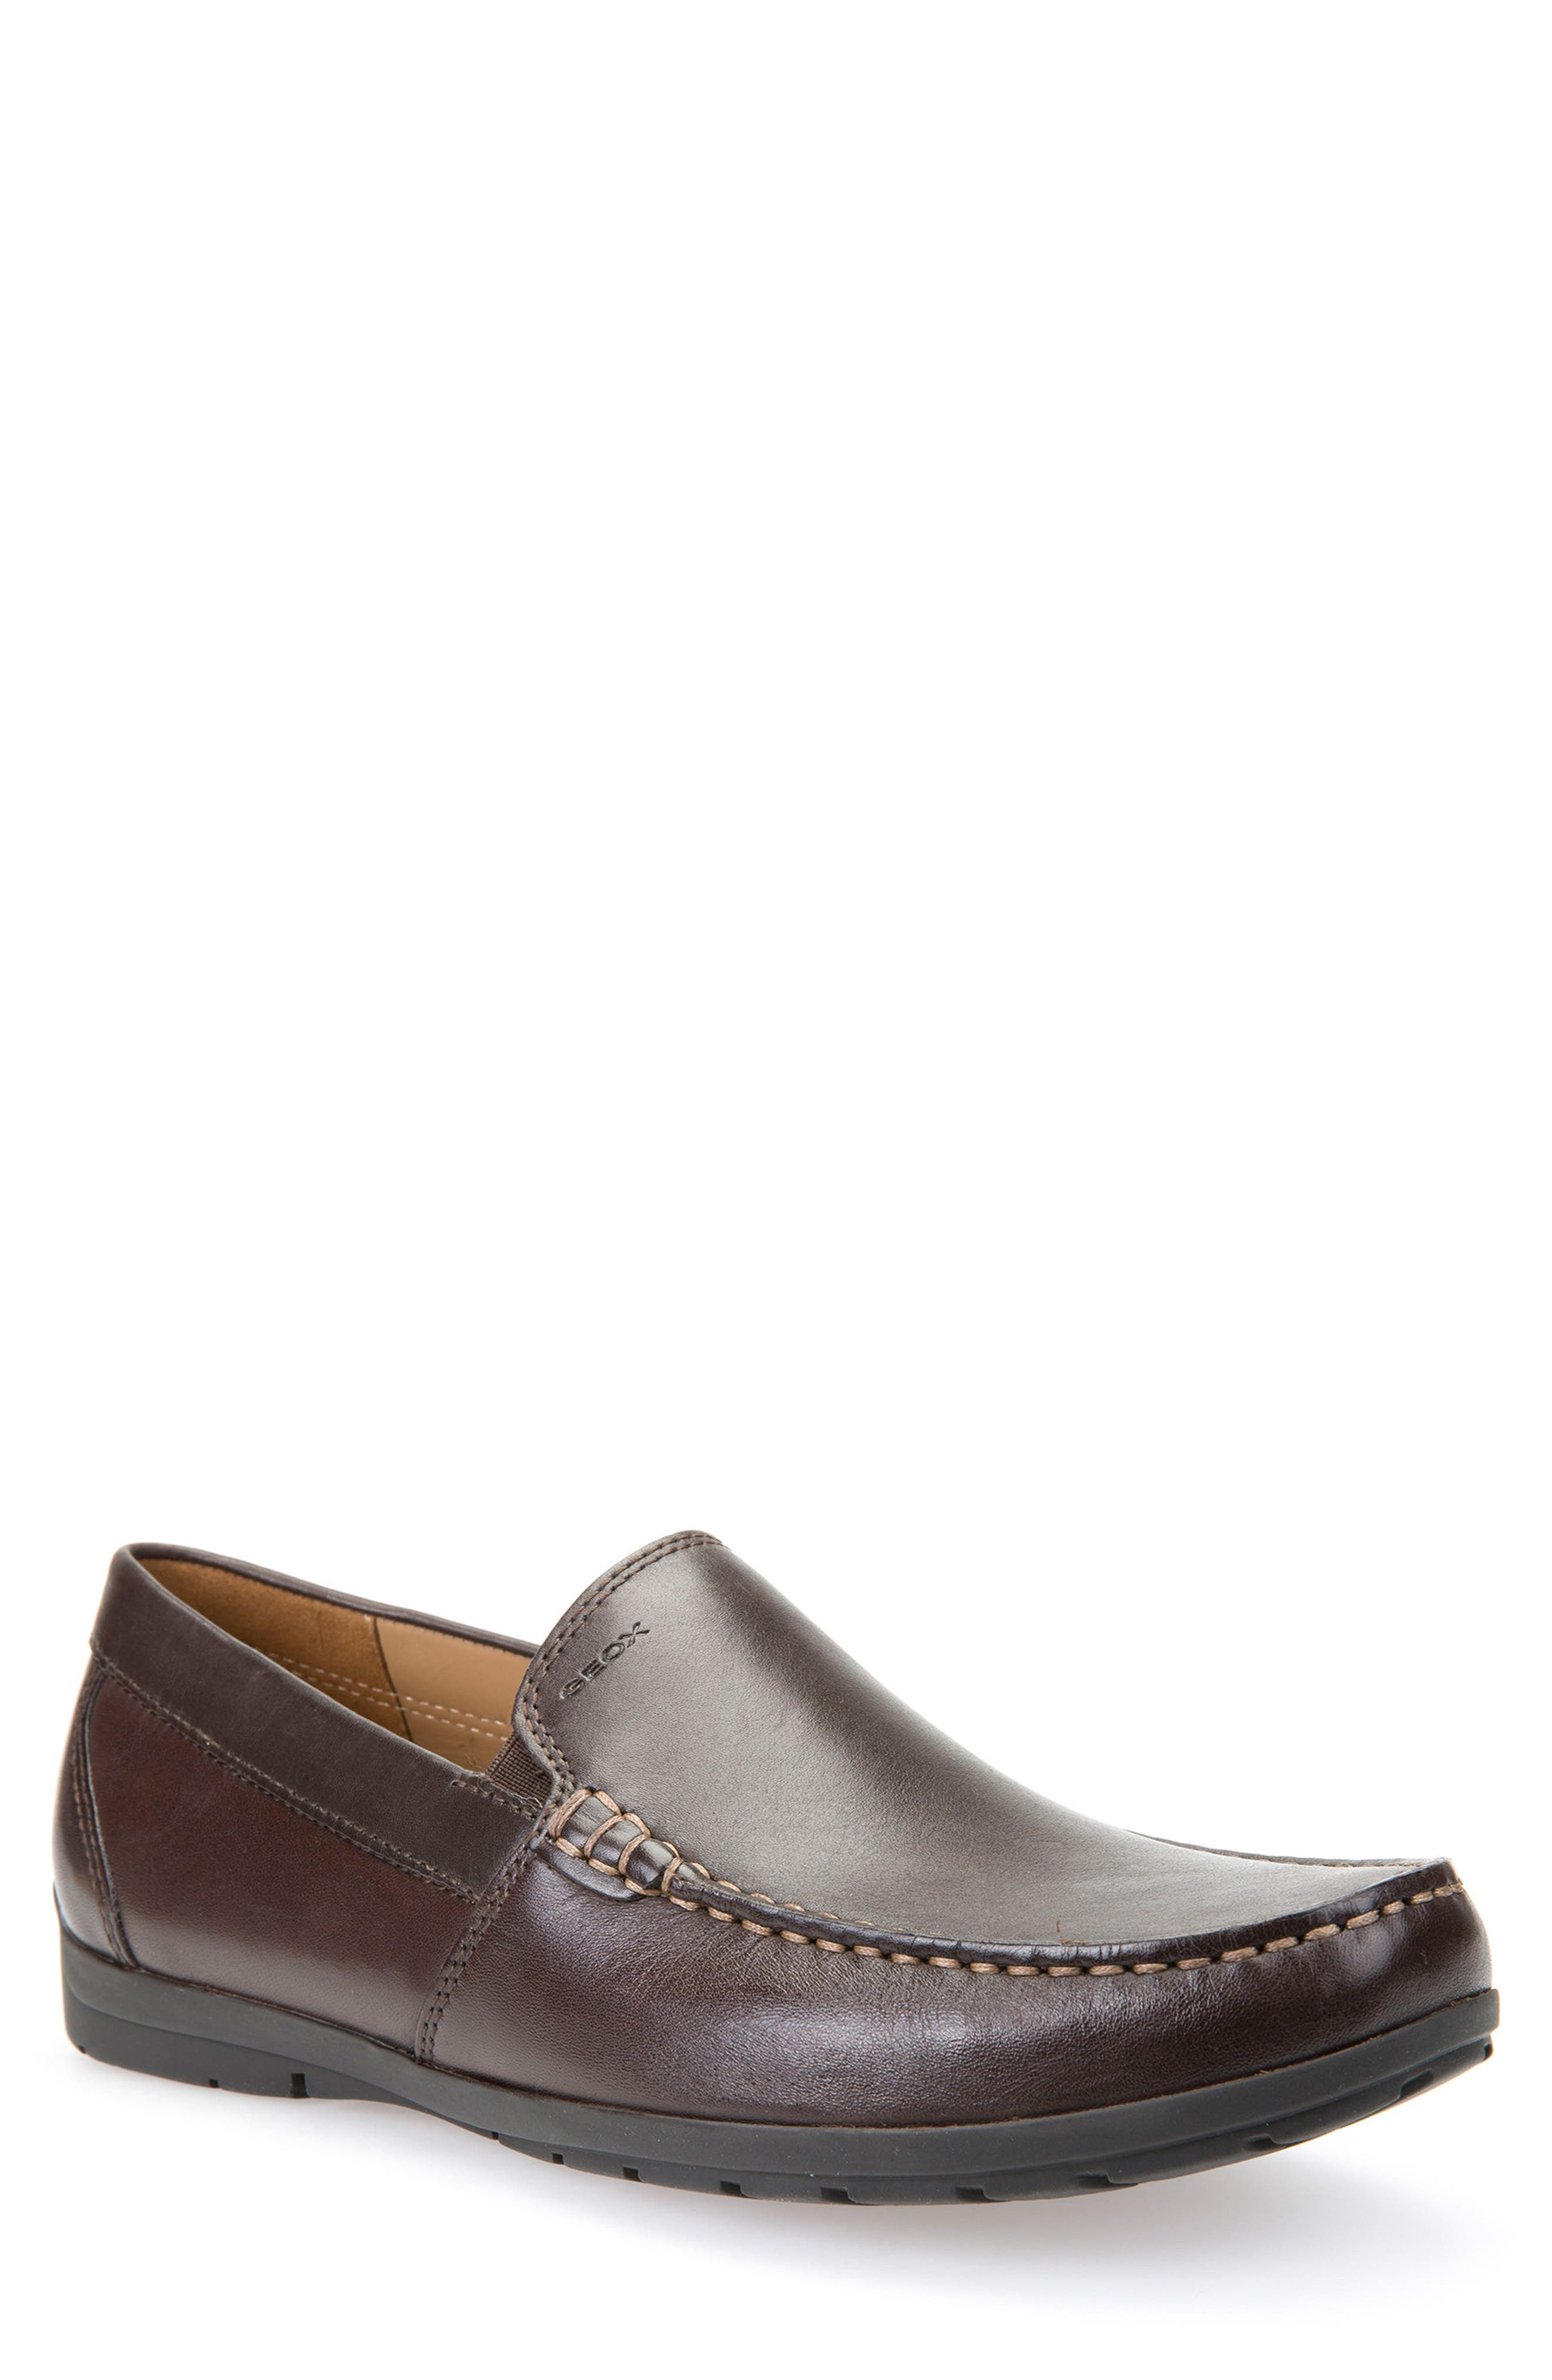 'Simon W2' Venetian Loafer,                         Main,                         color, BROWN LEATHER